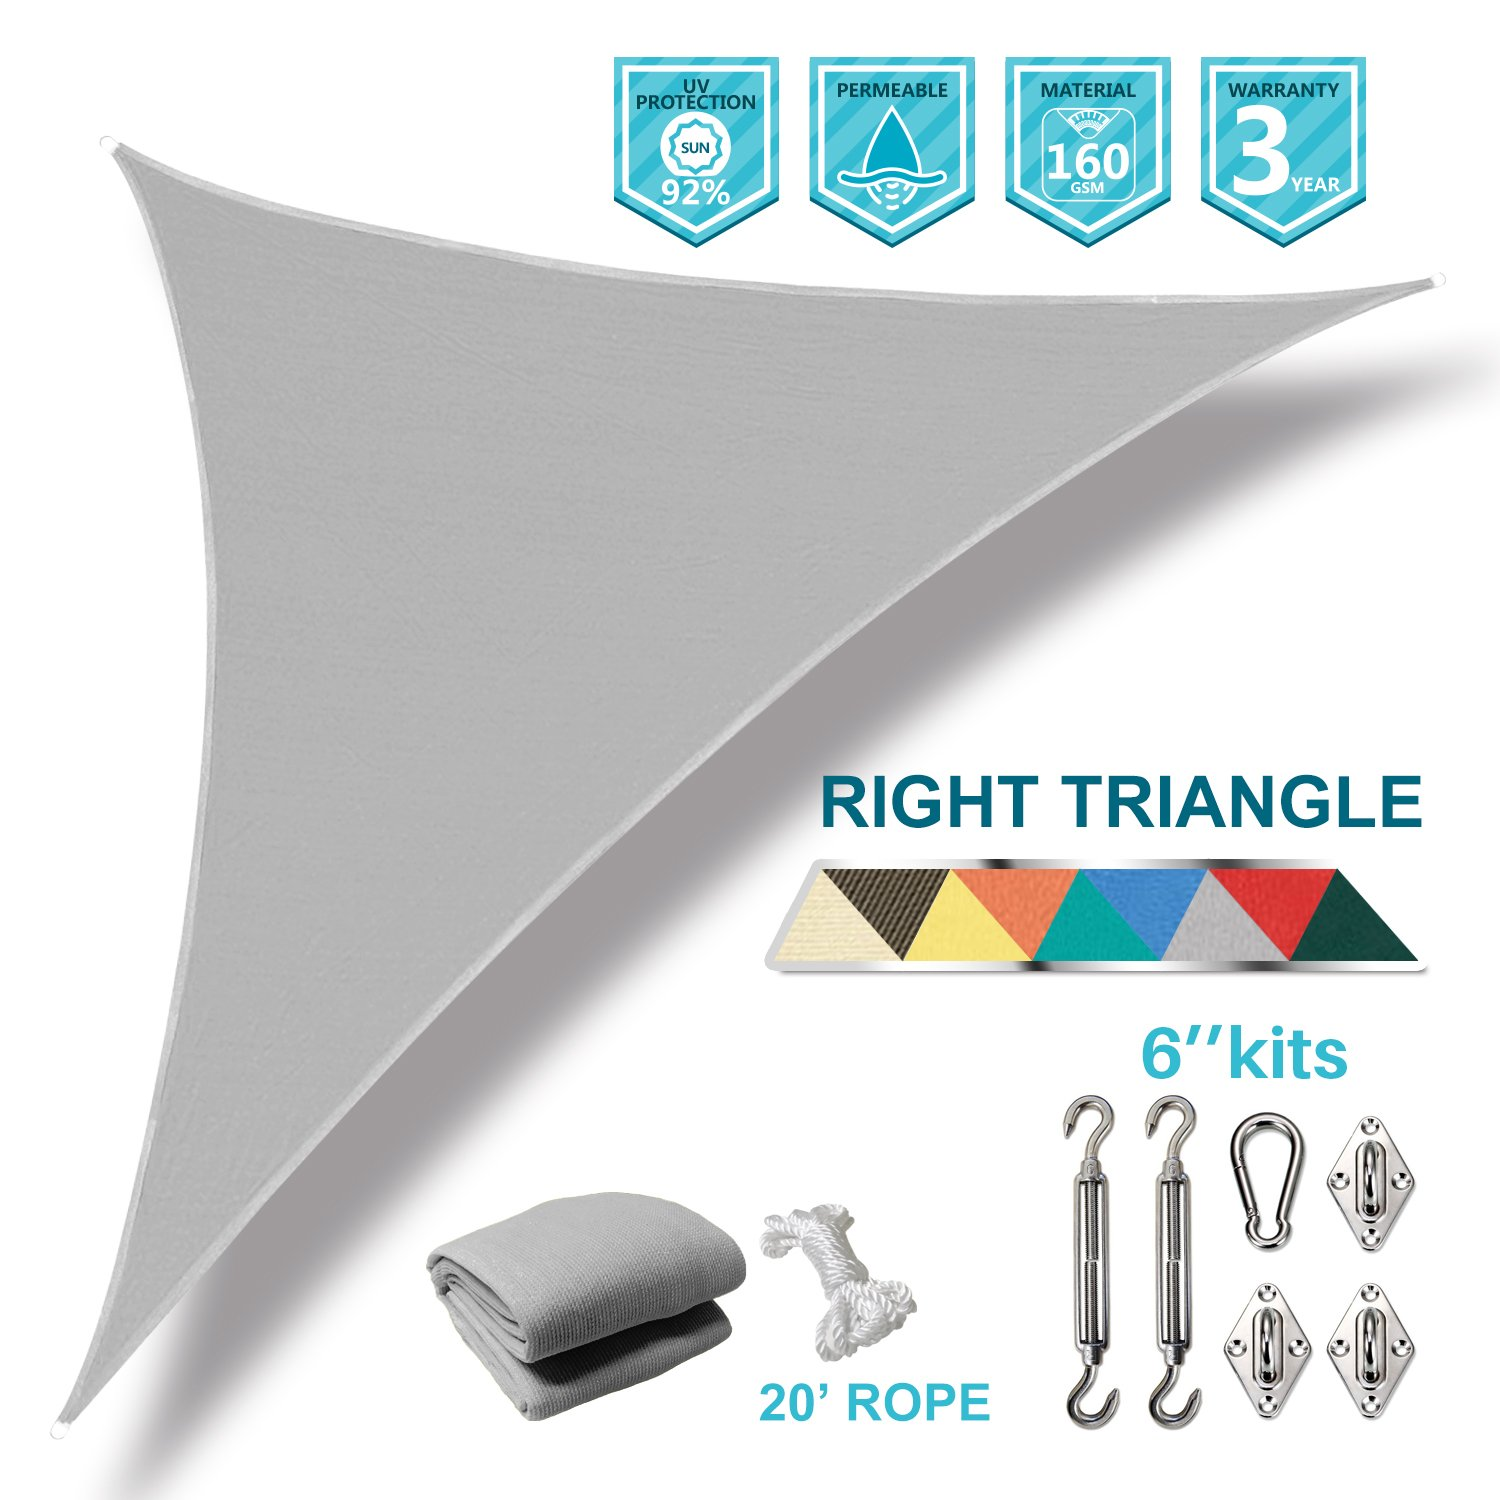 Coarbor 16'x16'x23' Right Triangle Sun Shade Sail Perfect for Patio Yard Deck Outdoor Garden with Hardware Kit UV Block Shade Cover Canopy-Light Grey